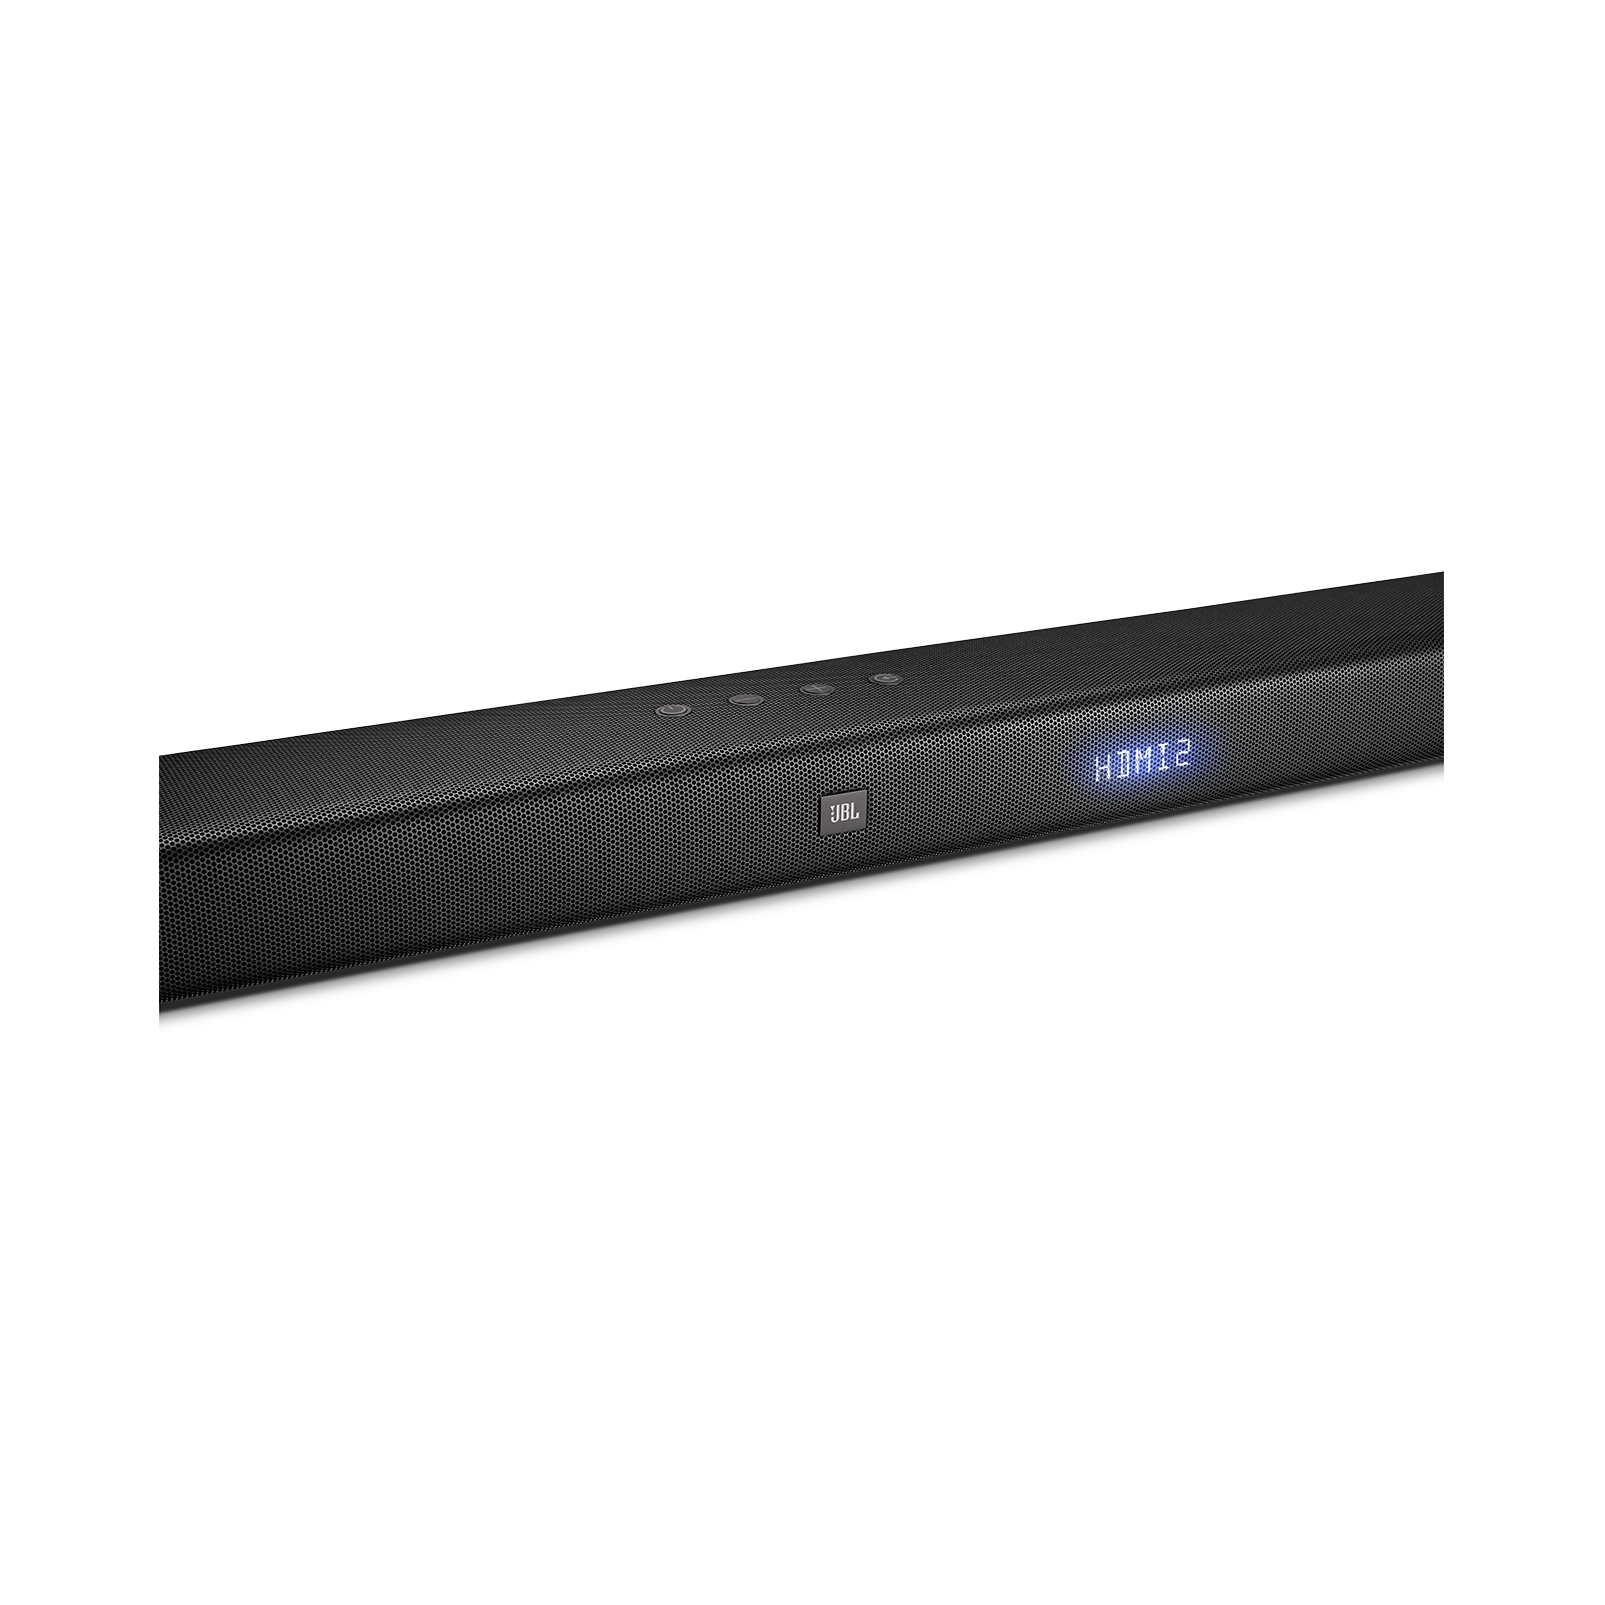 JBL Bar 5.1 - Black - 5.1-Channel 4K Ultra HD Soundbar with True Wireless Surround Speakers - Detailshot 5